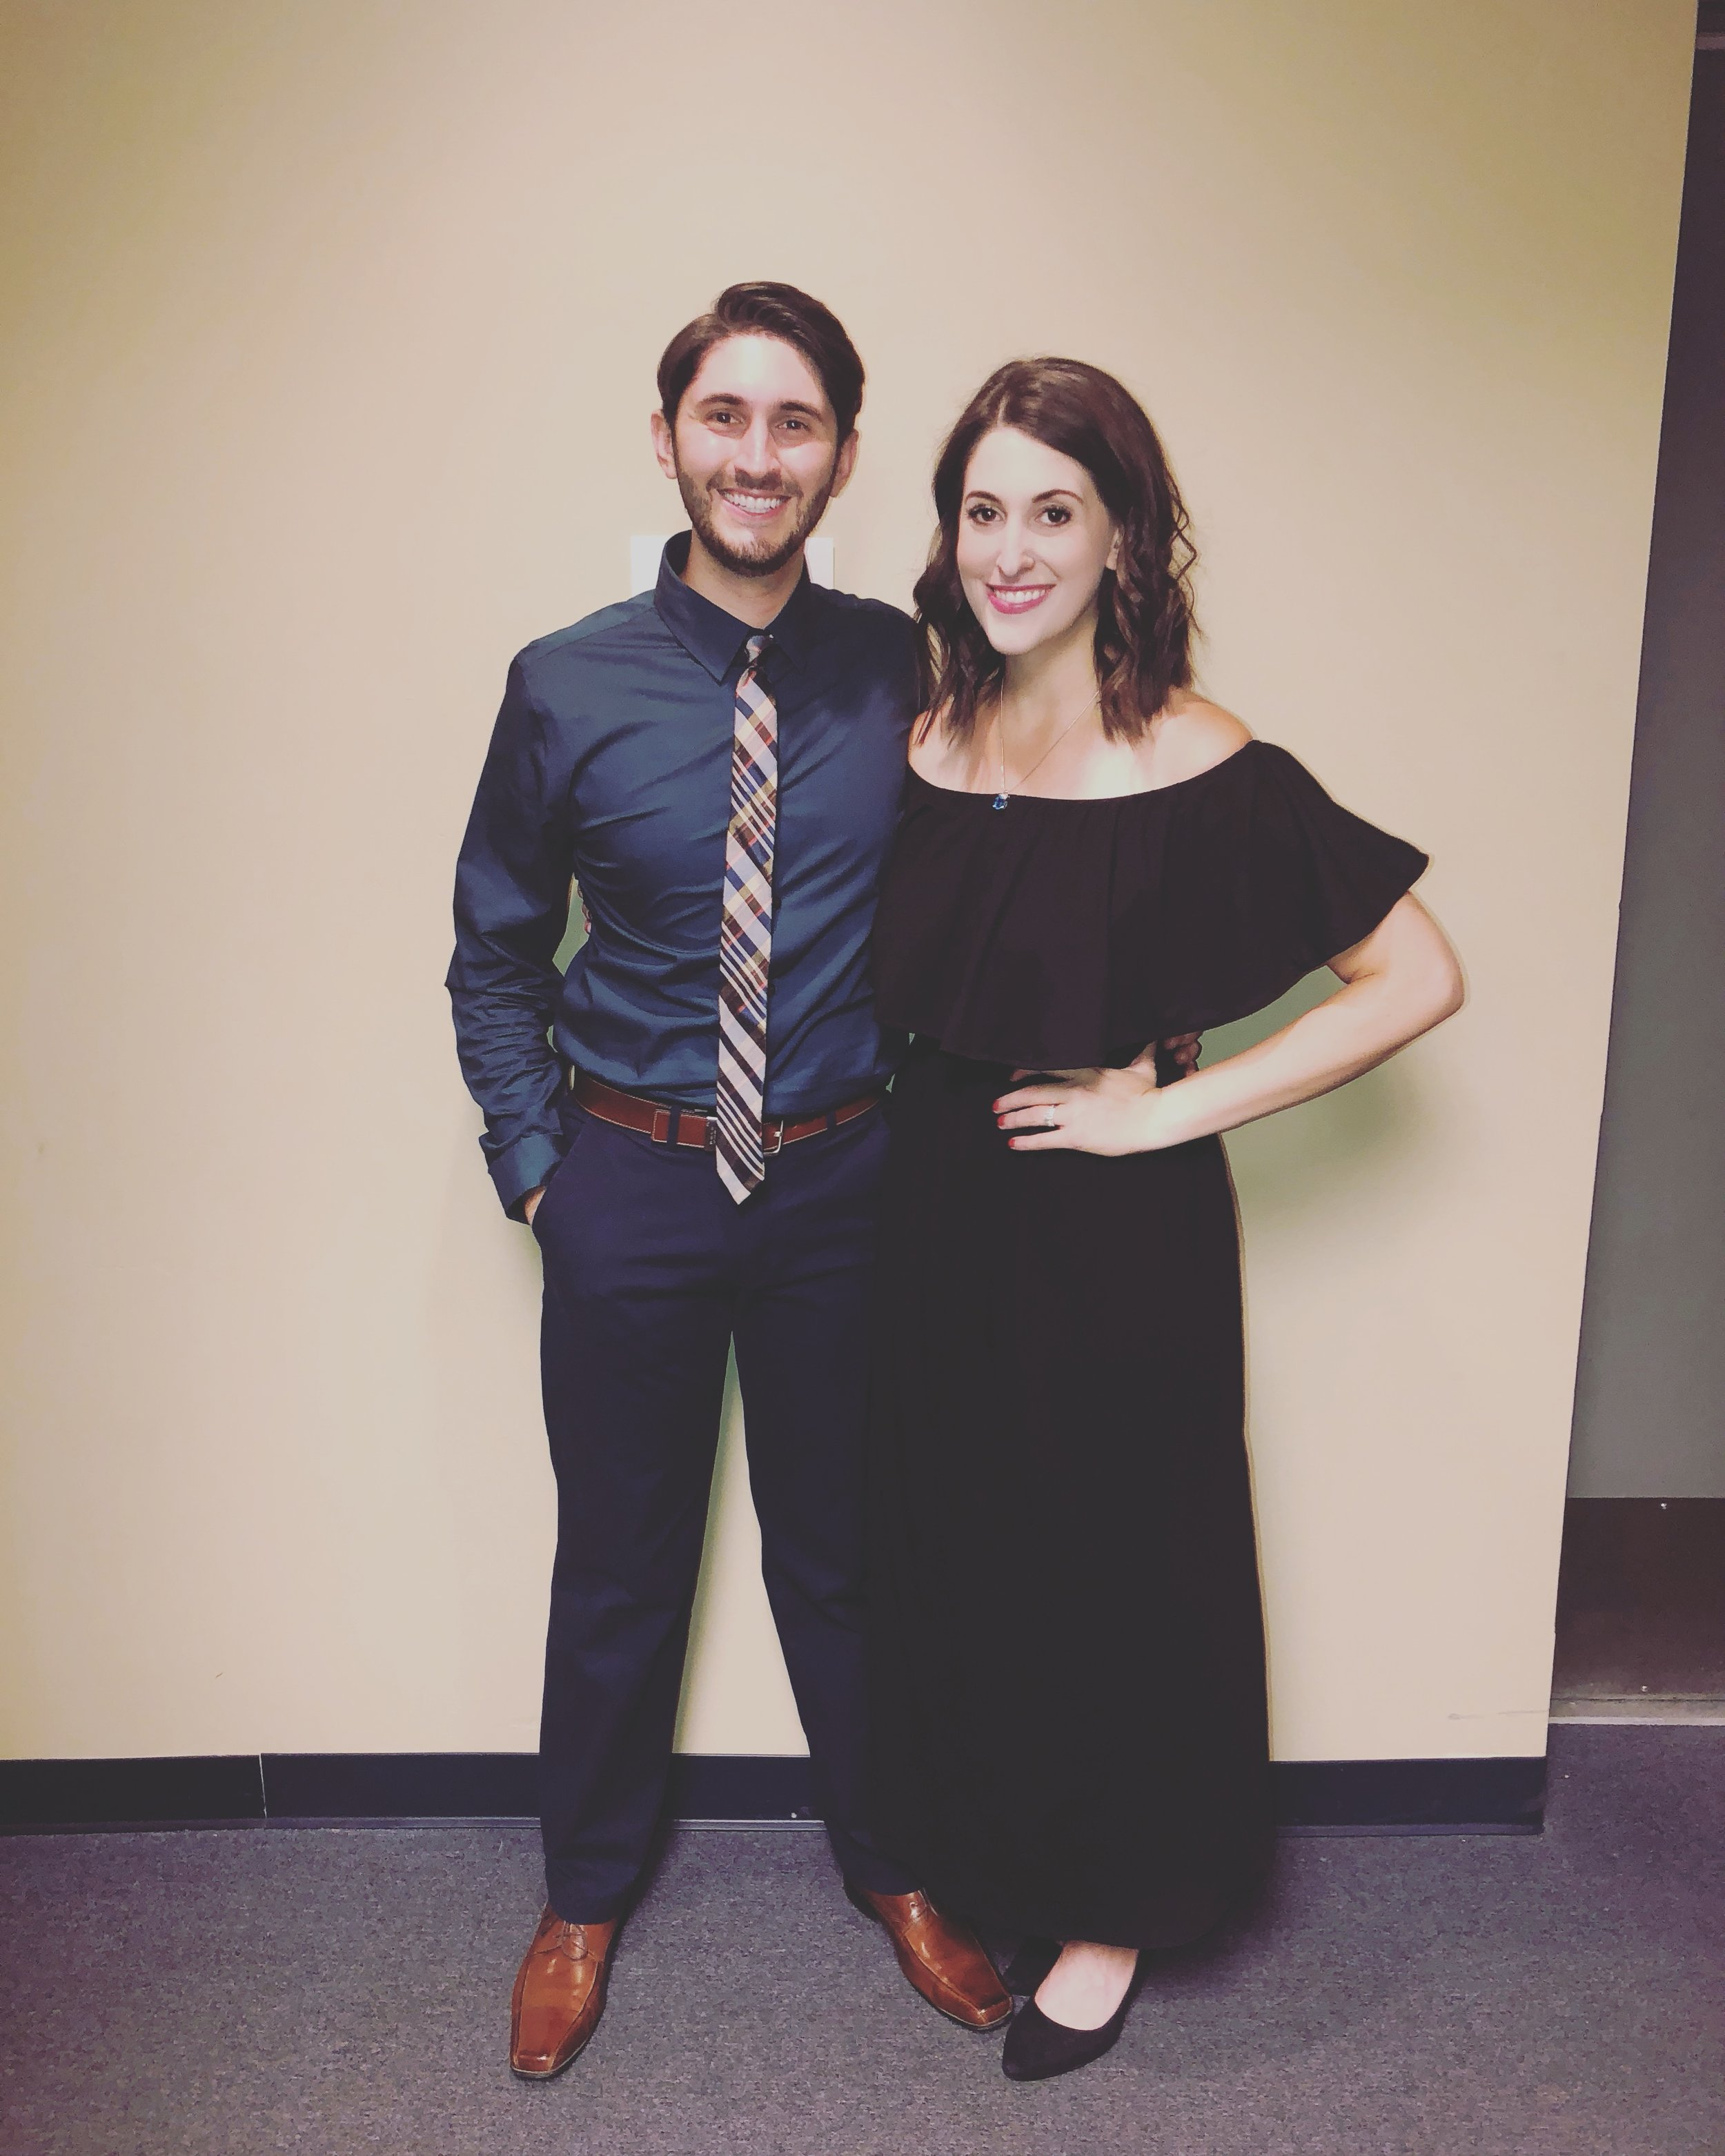 Lindsey & Michael Calvoni - Owners & Directors of Do Re Mi